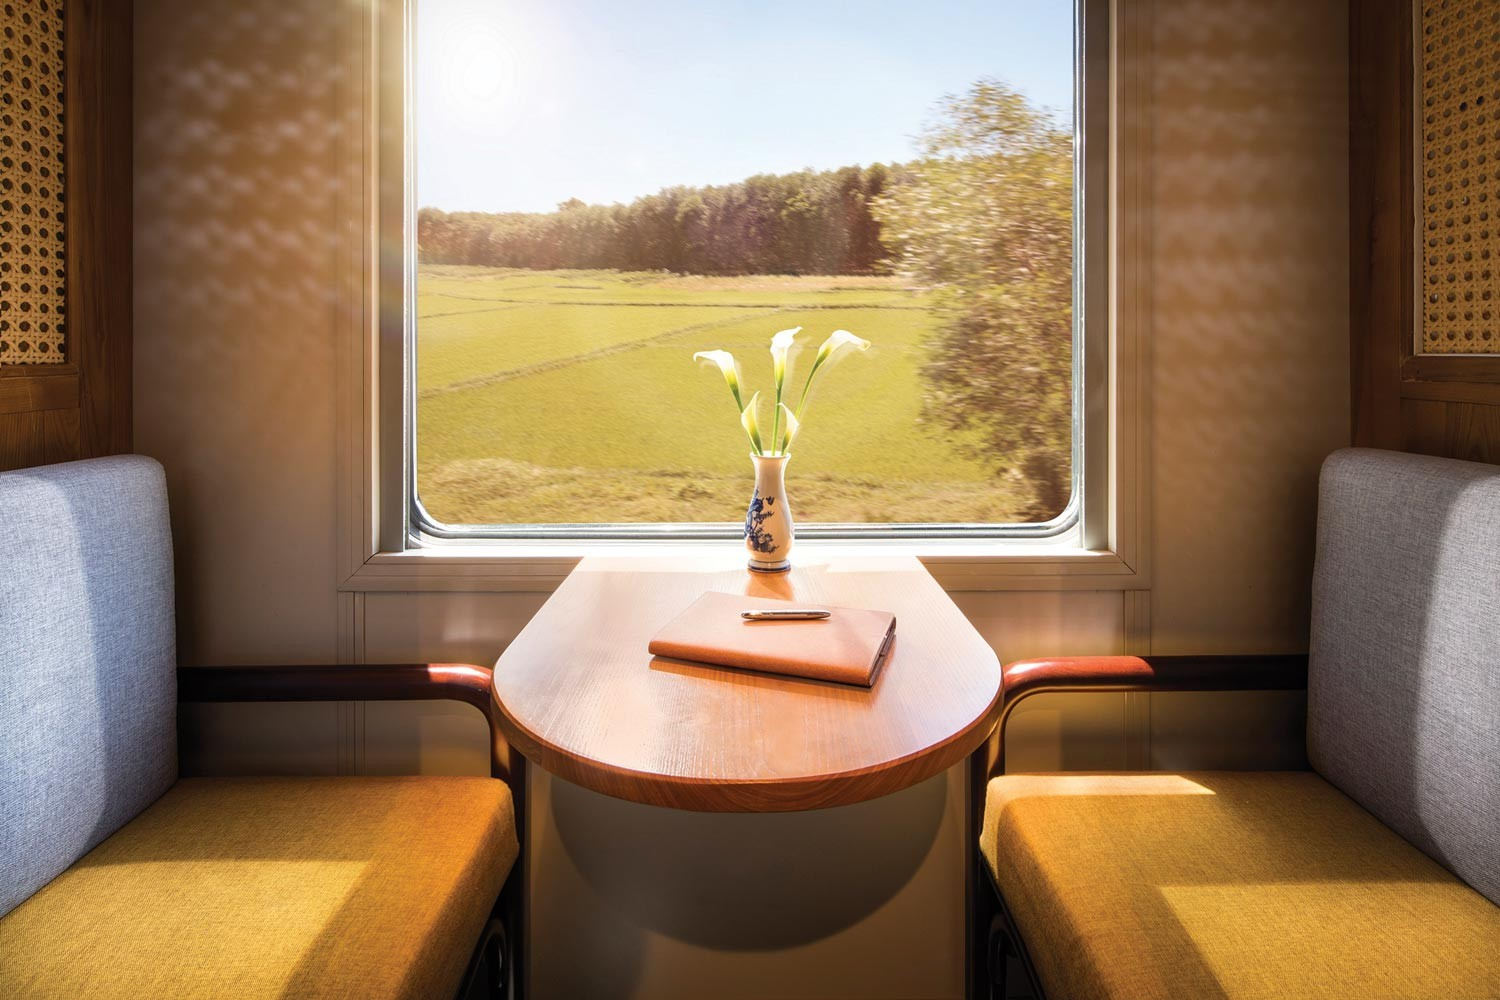 The Vietage: An Old-World Charm Luxury Railway Journey